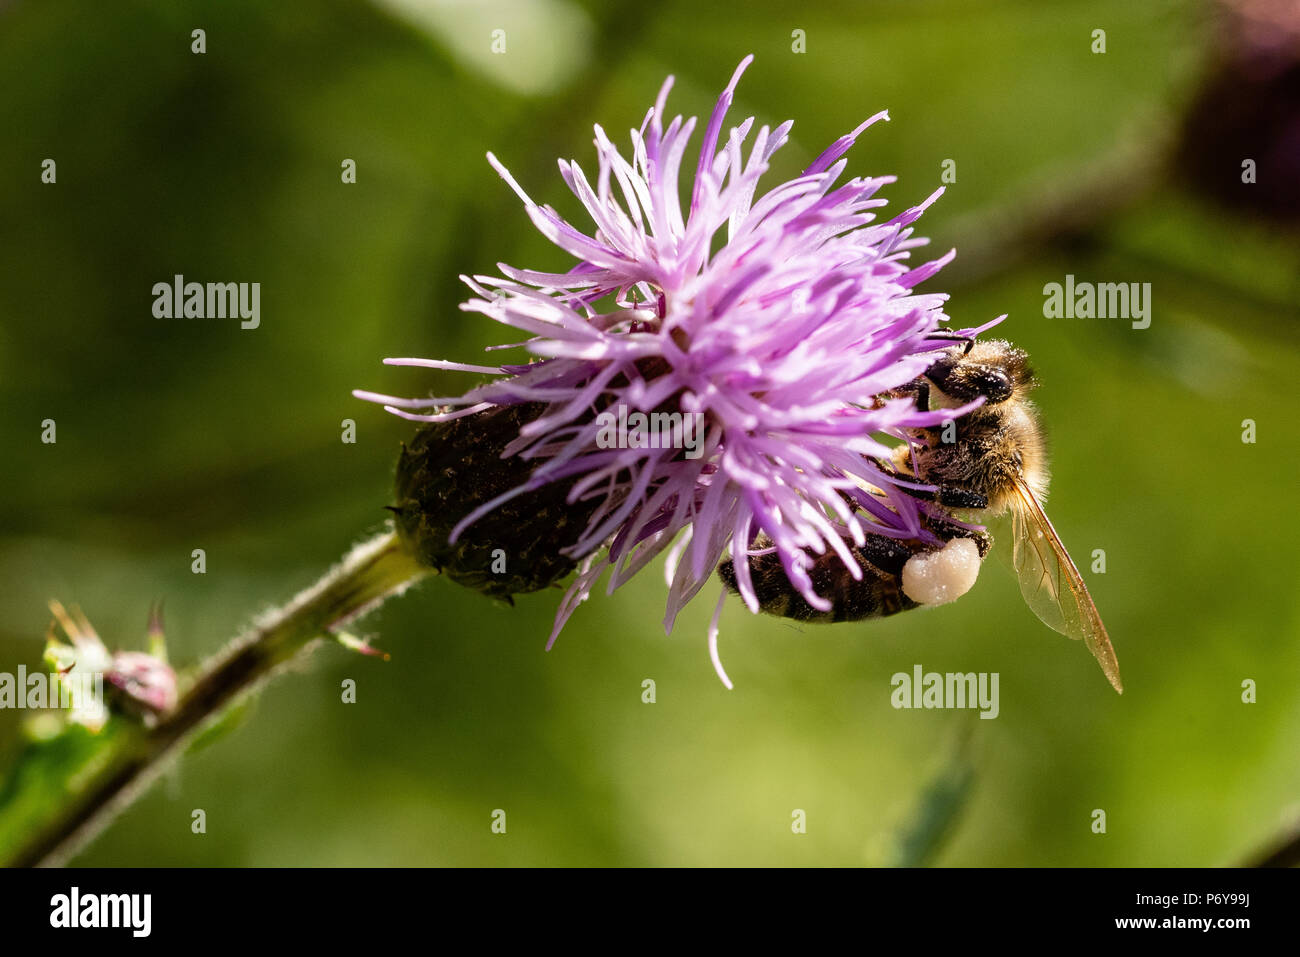 Honey Bee, creeping thistle, Black Forest, Germany - Stock Image